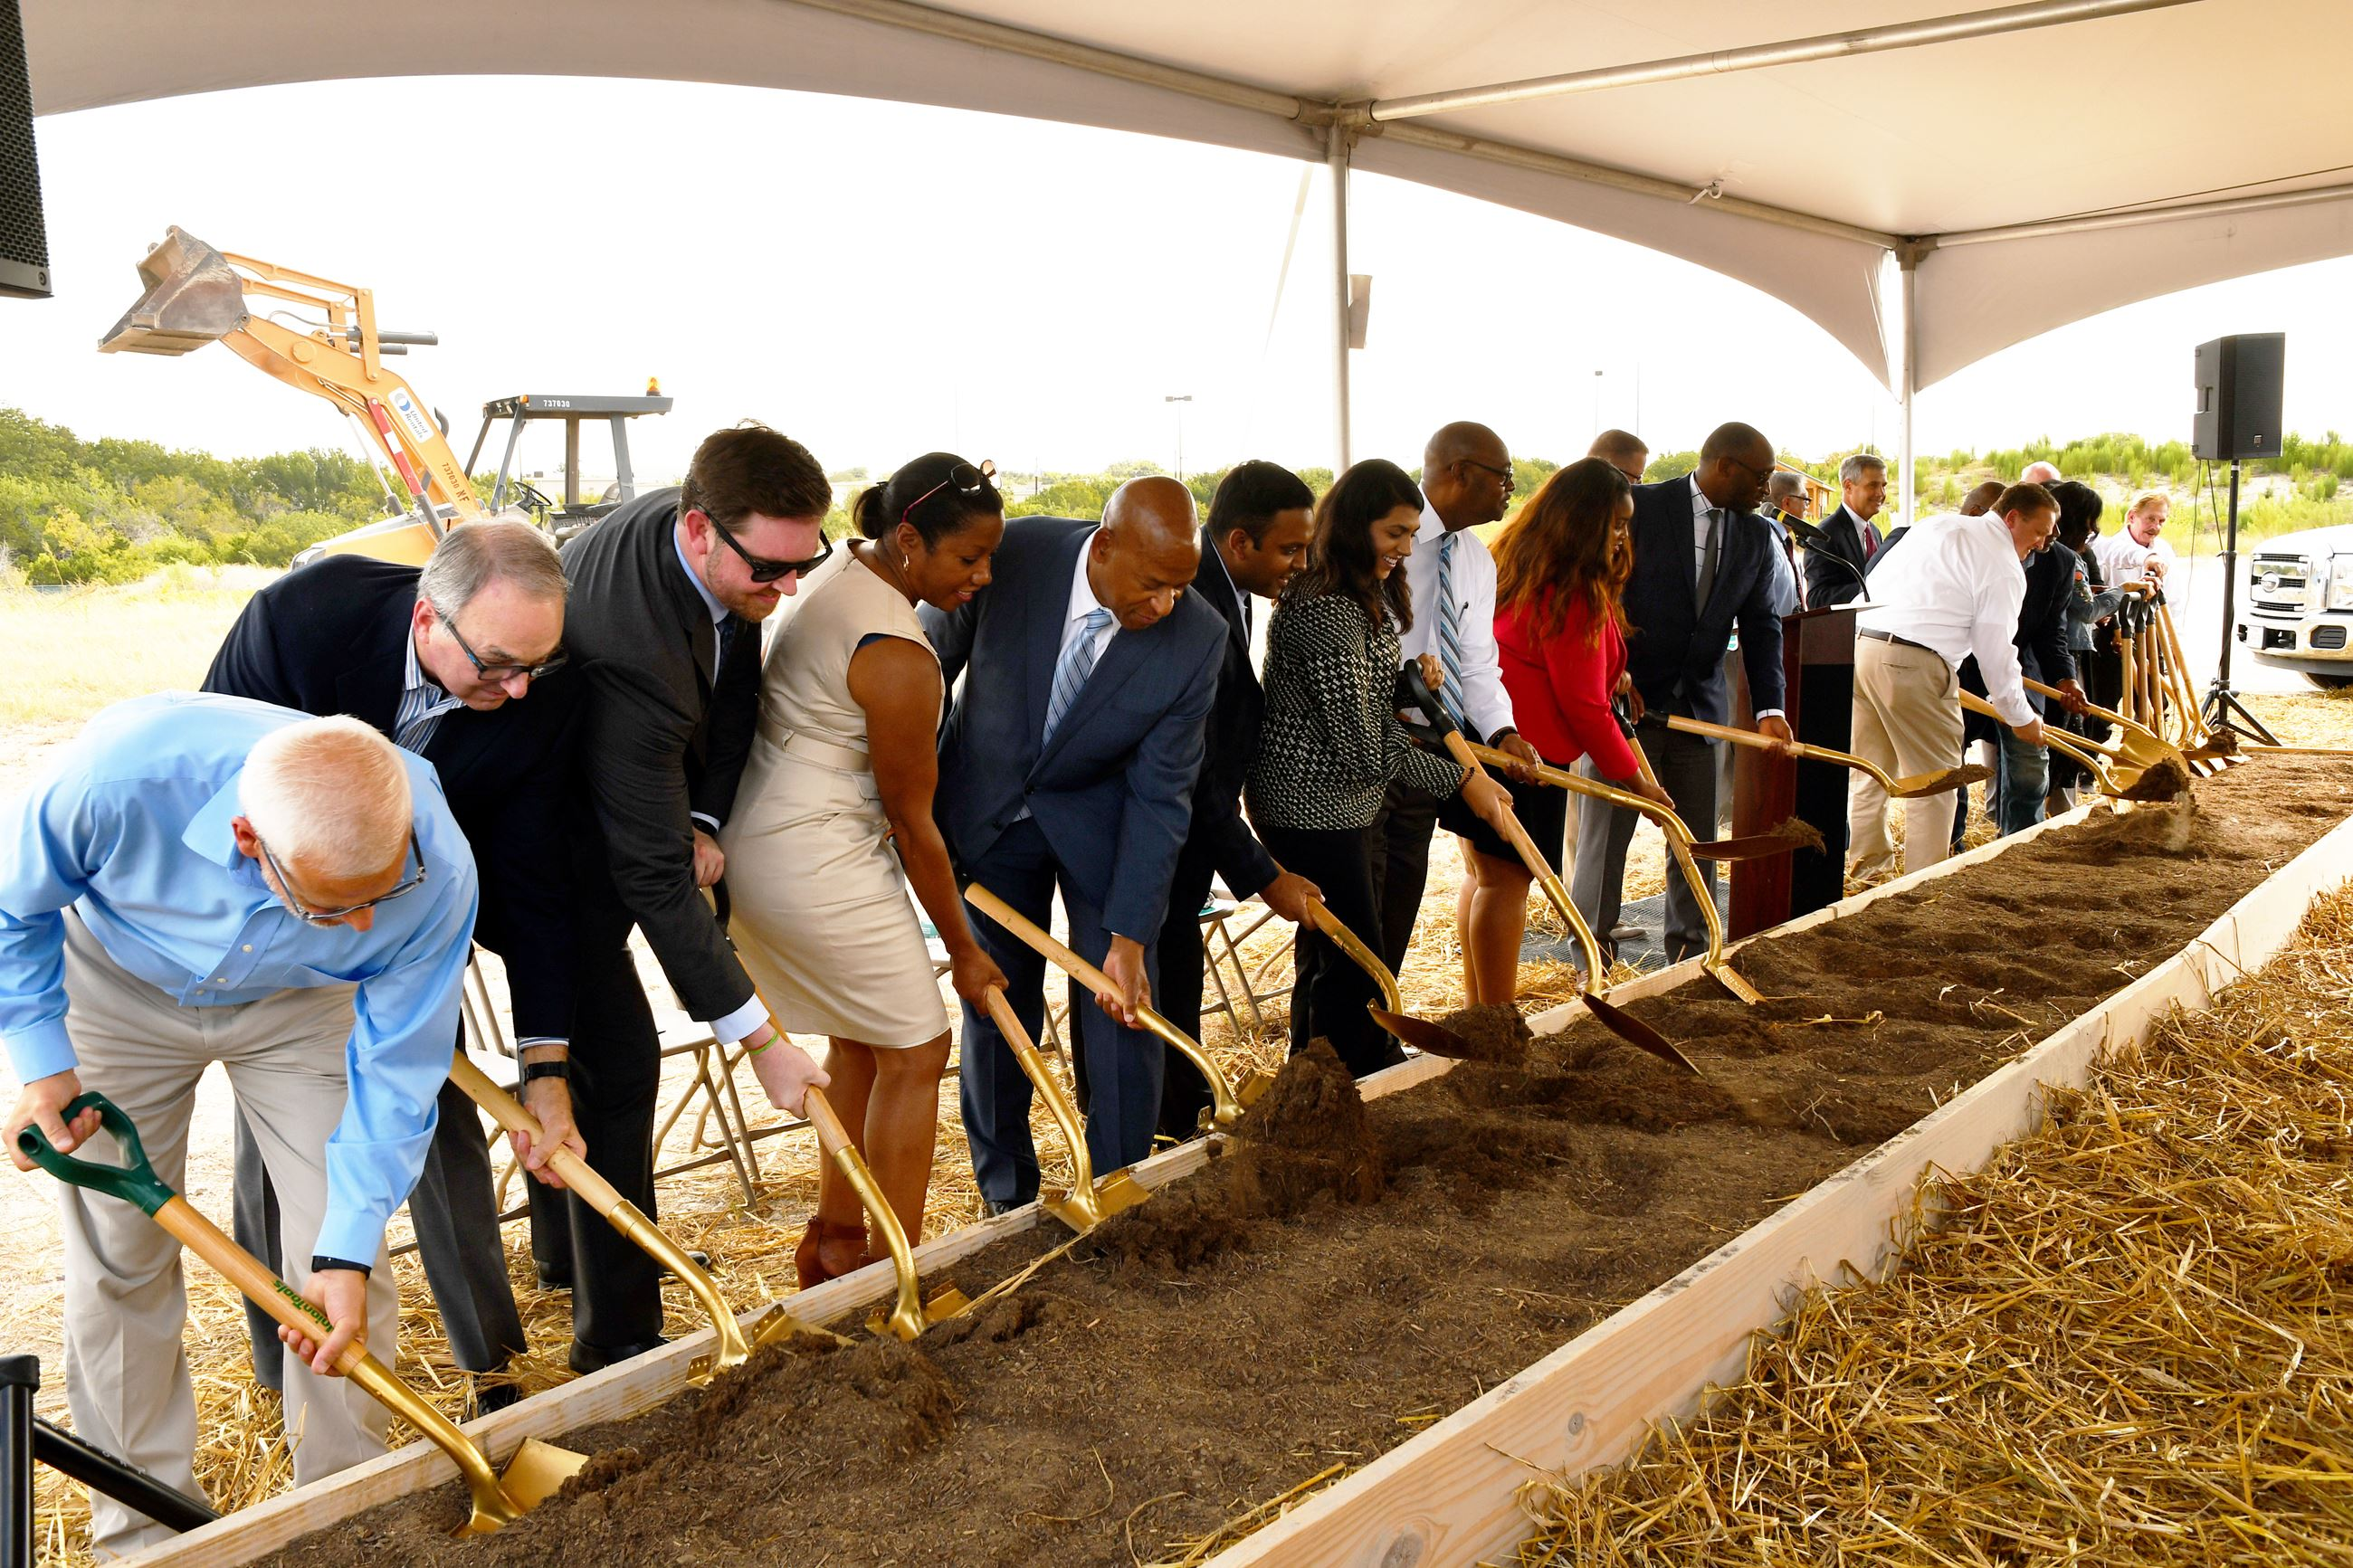 City Council Members and Guests shovel dirt at the Hotel & Convention Center groundbreaking